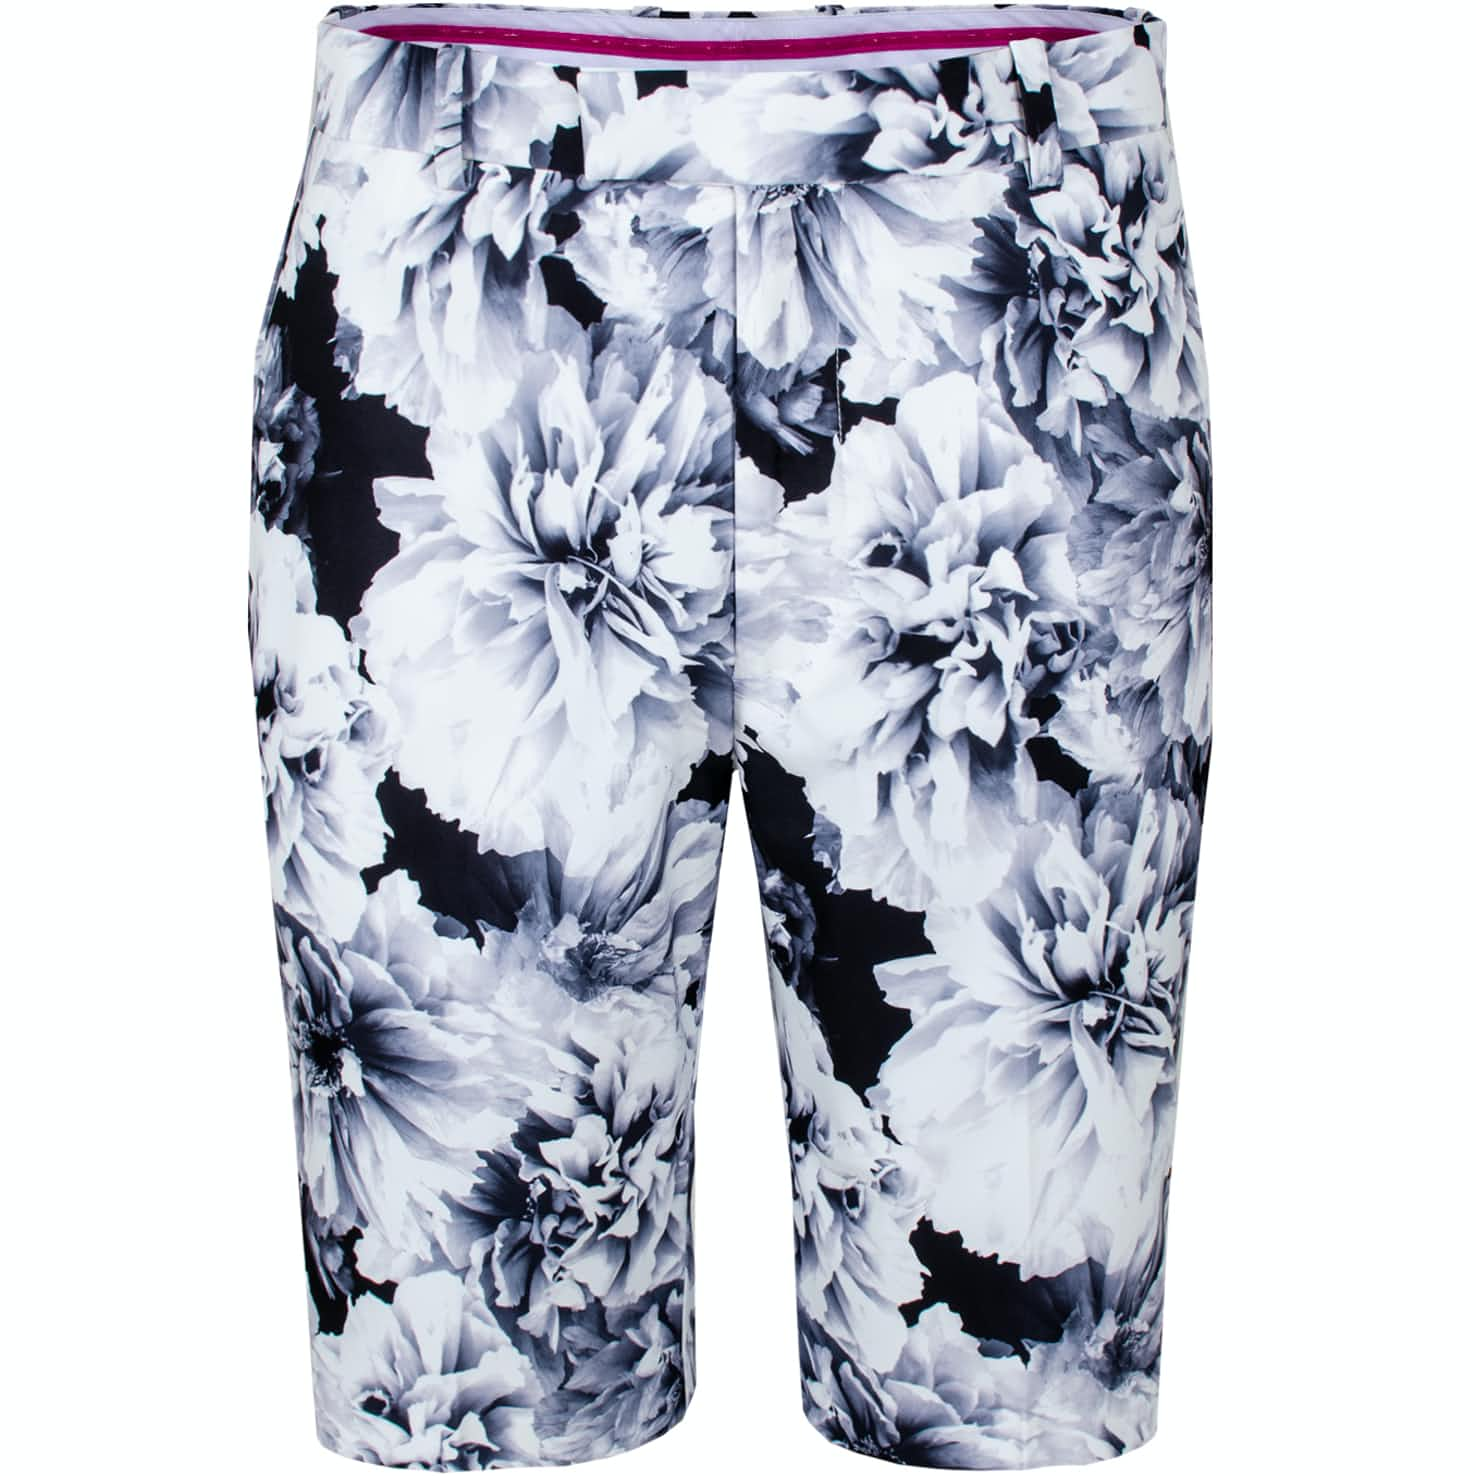 Printed Floral Shorts Snow/Onyx - SS20